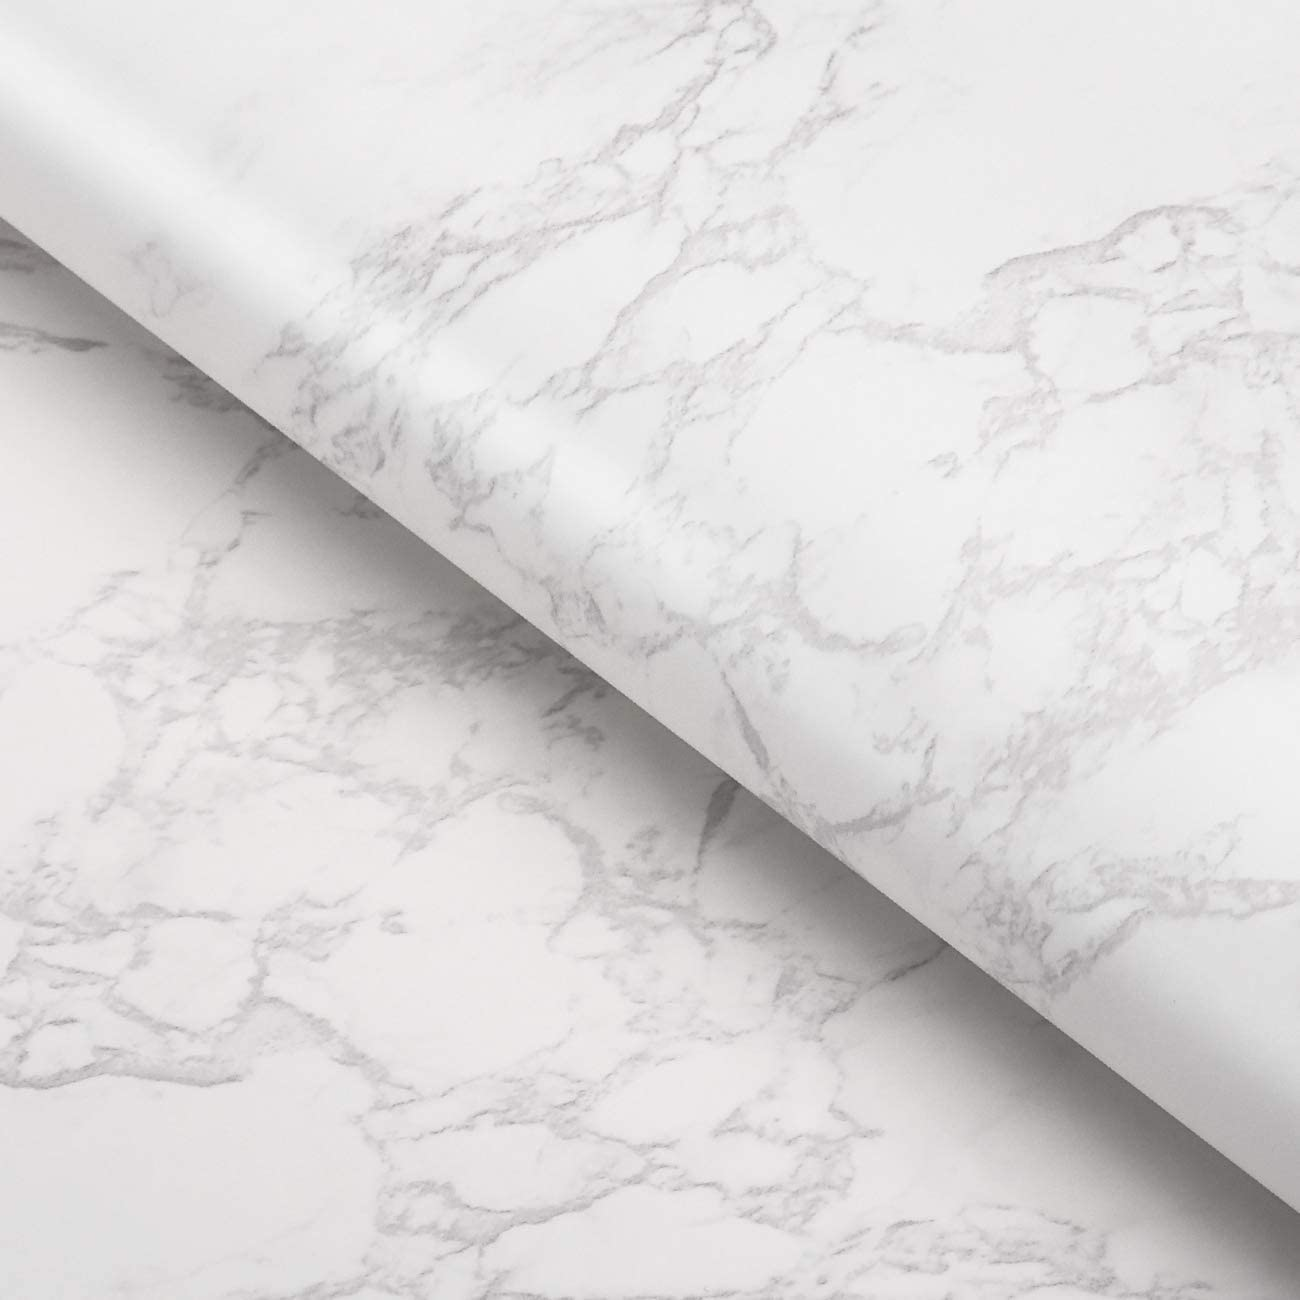 FunStick Matte White Grey Raleigh Mall Marble and Counte Online limited product Stick Wallpaper Peel